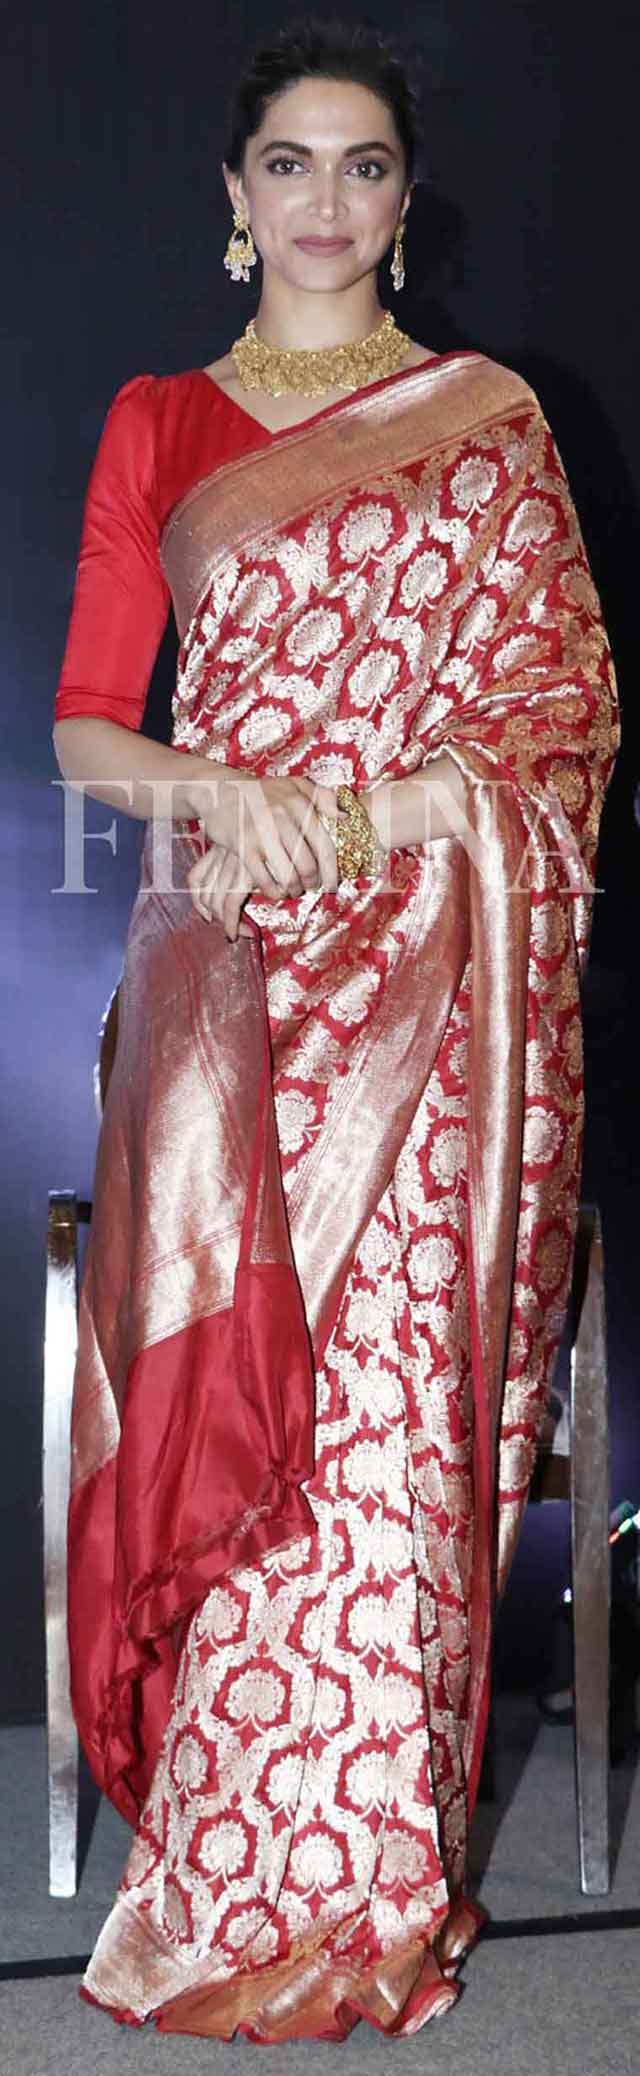 Deepika Padukone Indian wear looks | Femina.in